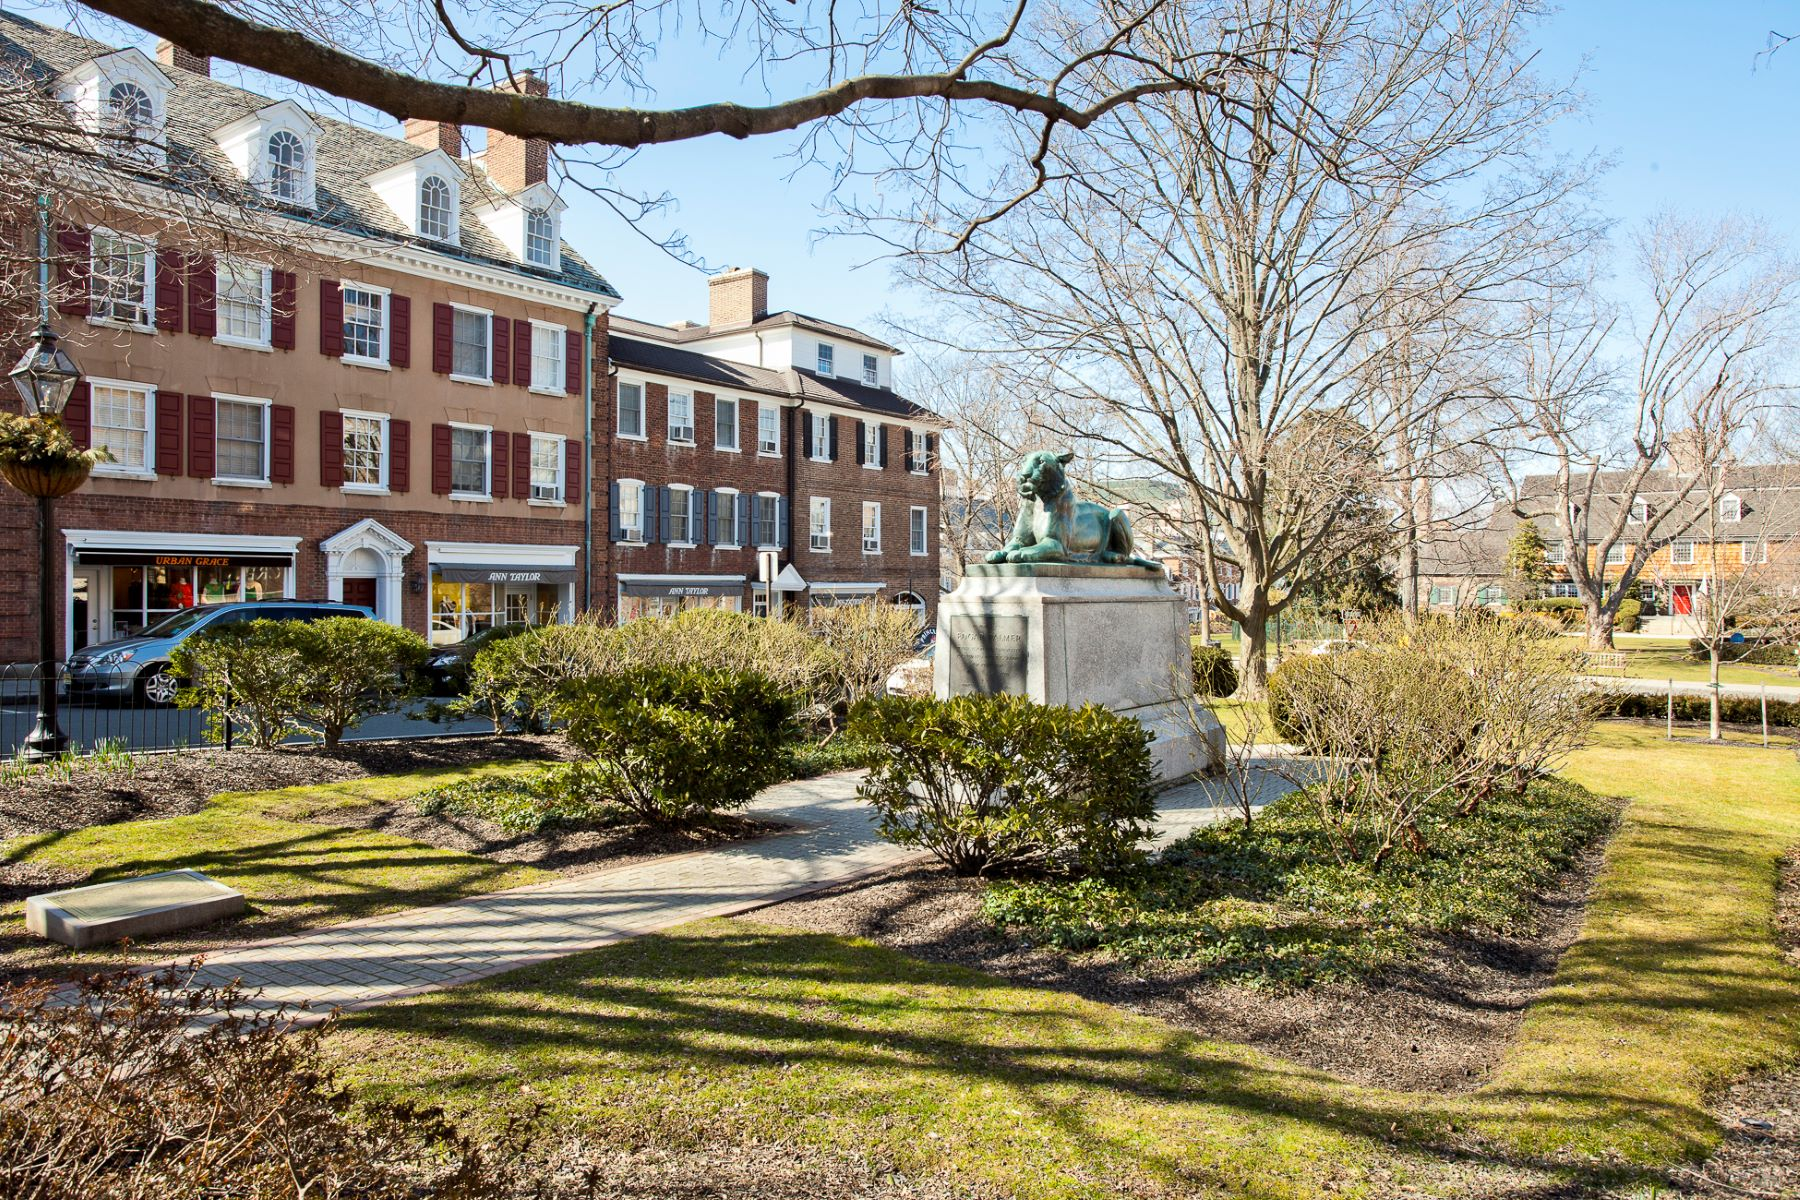 Additional photo for property listing at Welcome to 30 Maclean! 30 Maclean Street, Unit 6, Princeton, New Jersey 08542 United States